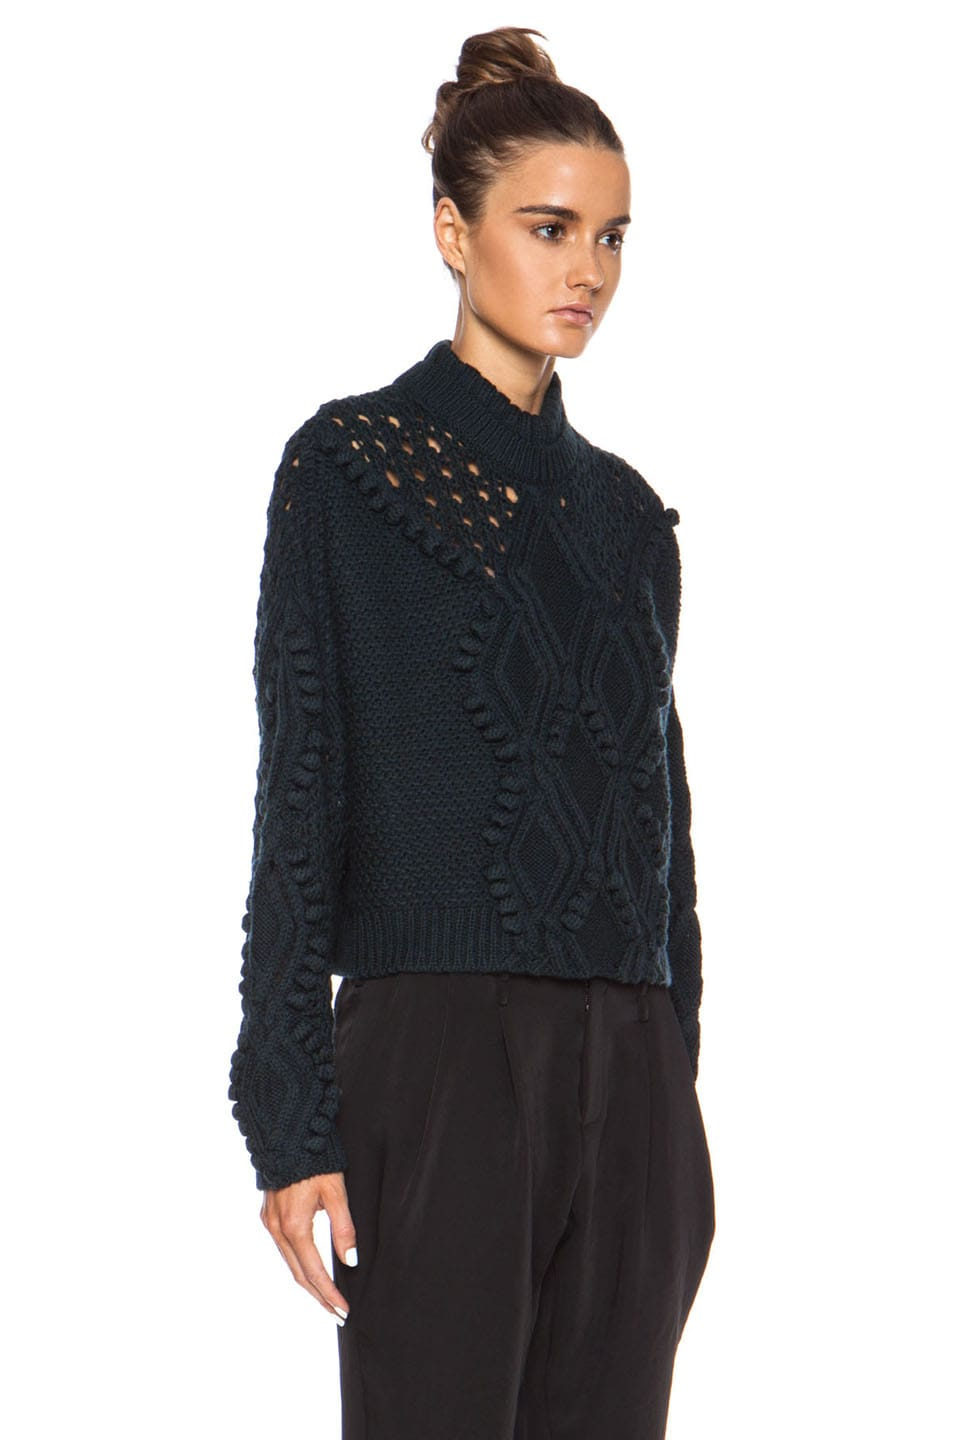 Image 3 of 3.1 phillip lim Cable and Popcorn Cropped Wool Pullover in Forest Melange